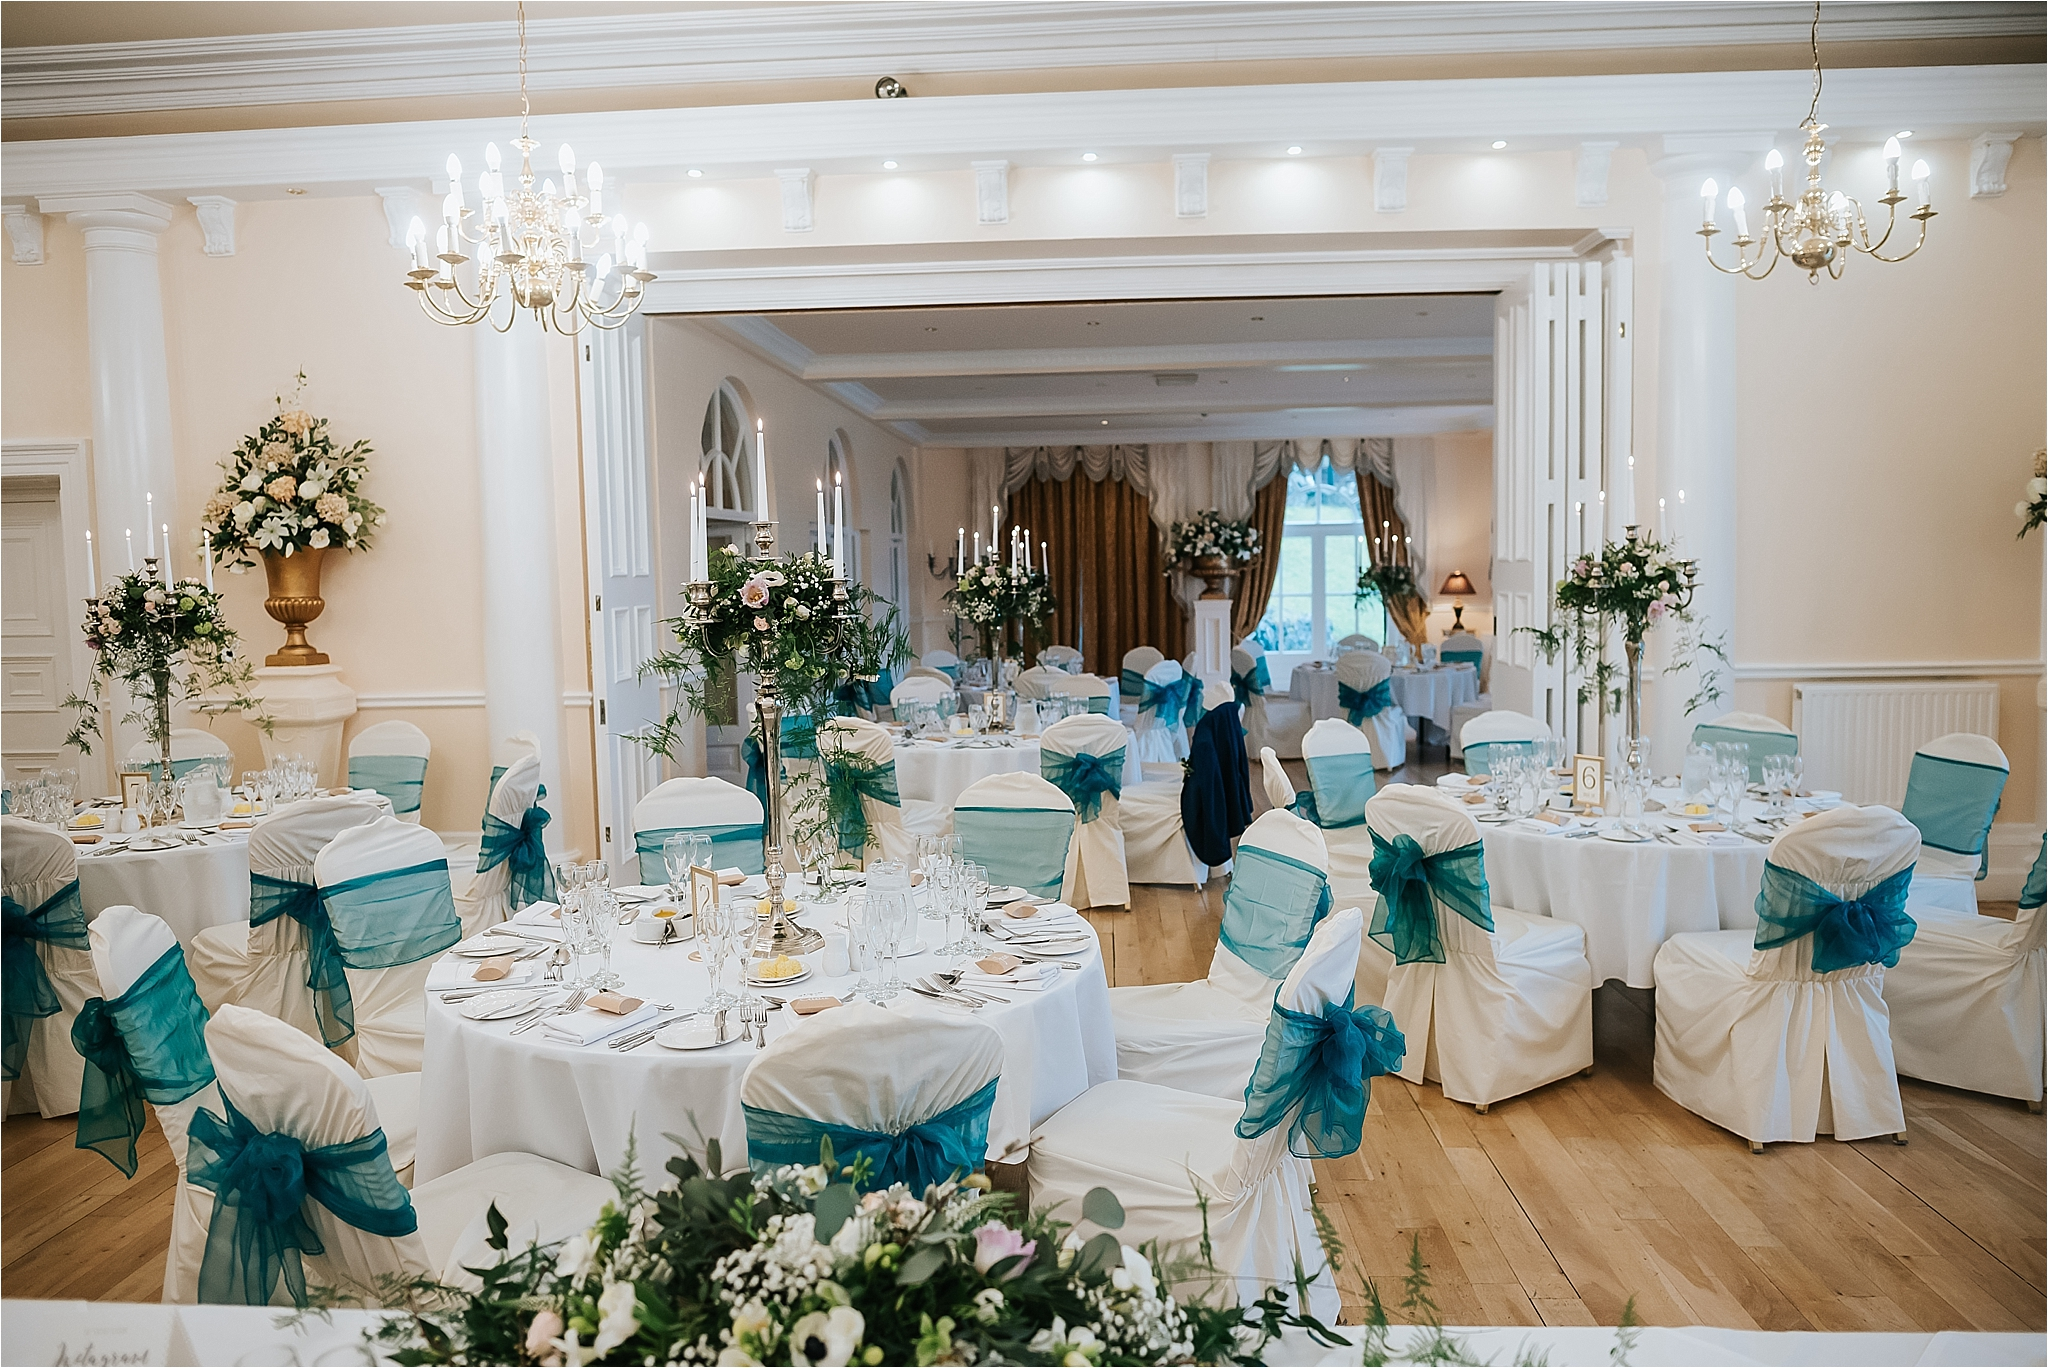 grange hotel laid out for wedding breakfast